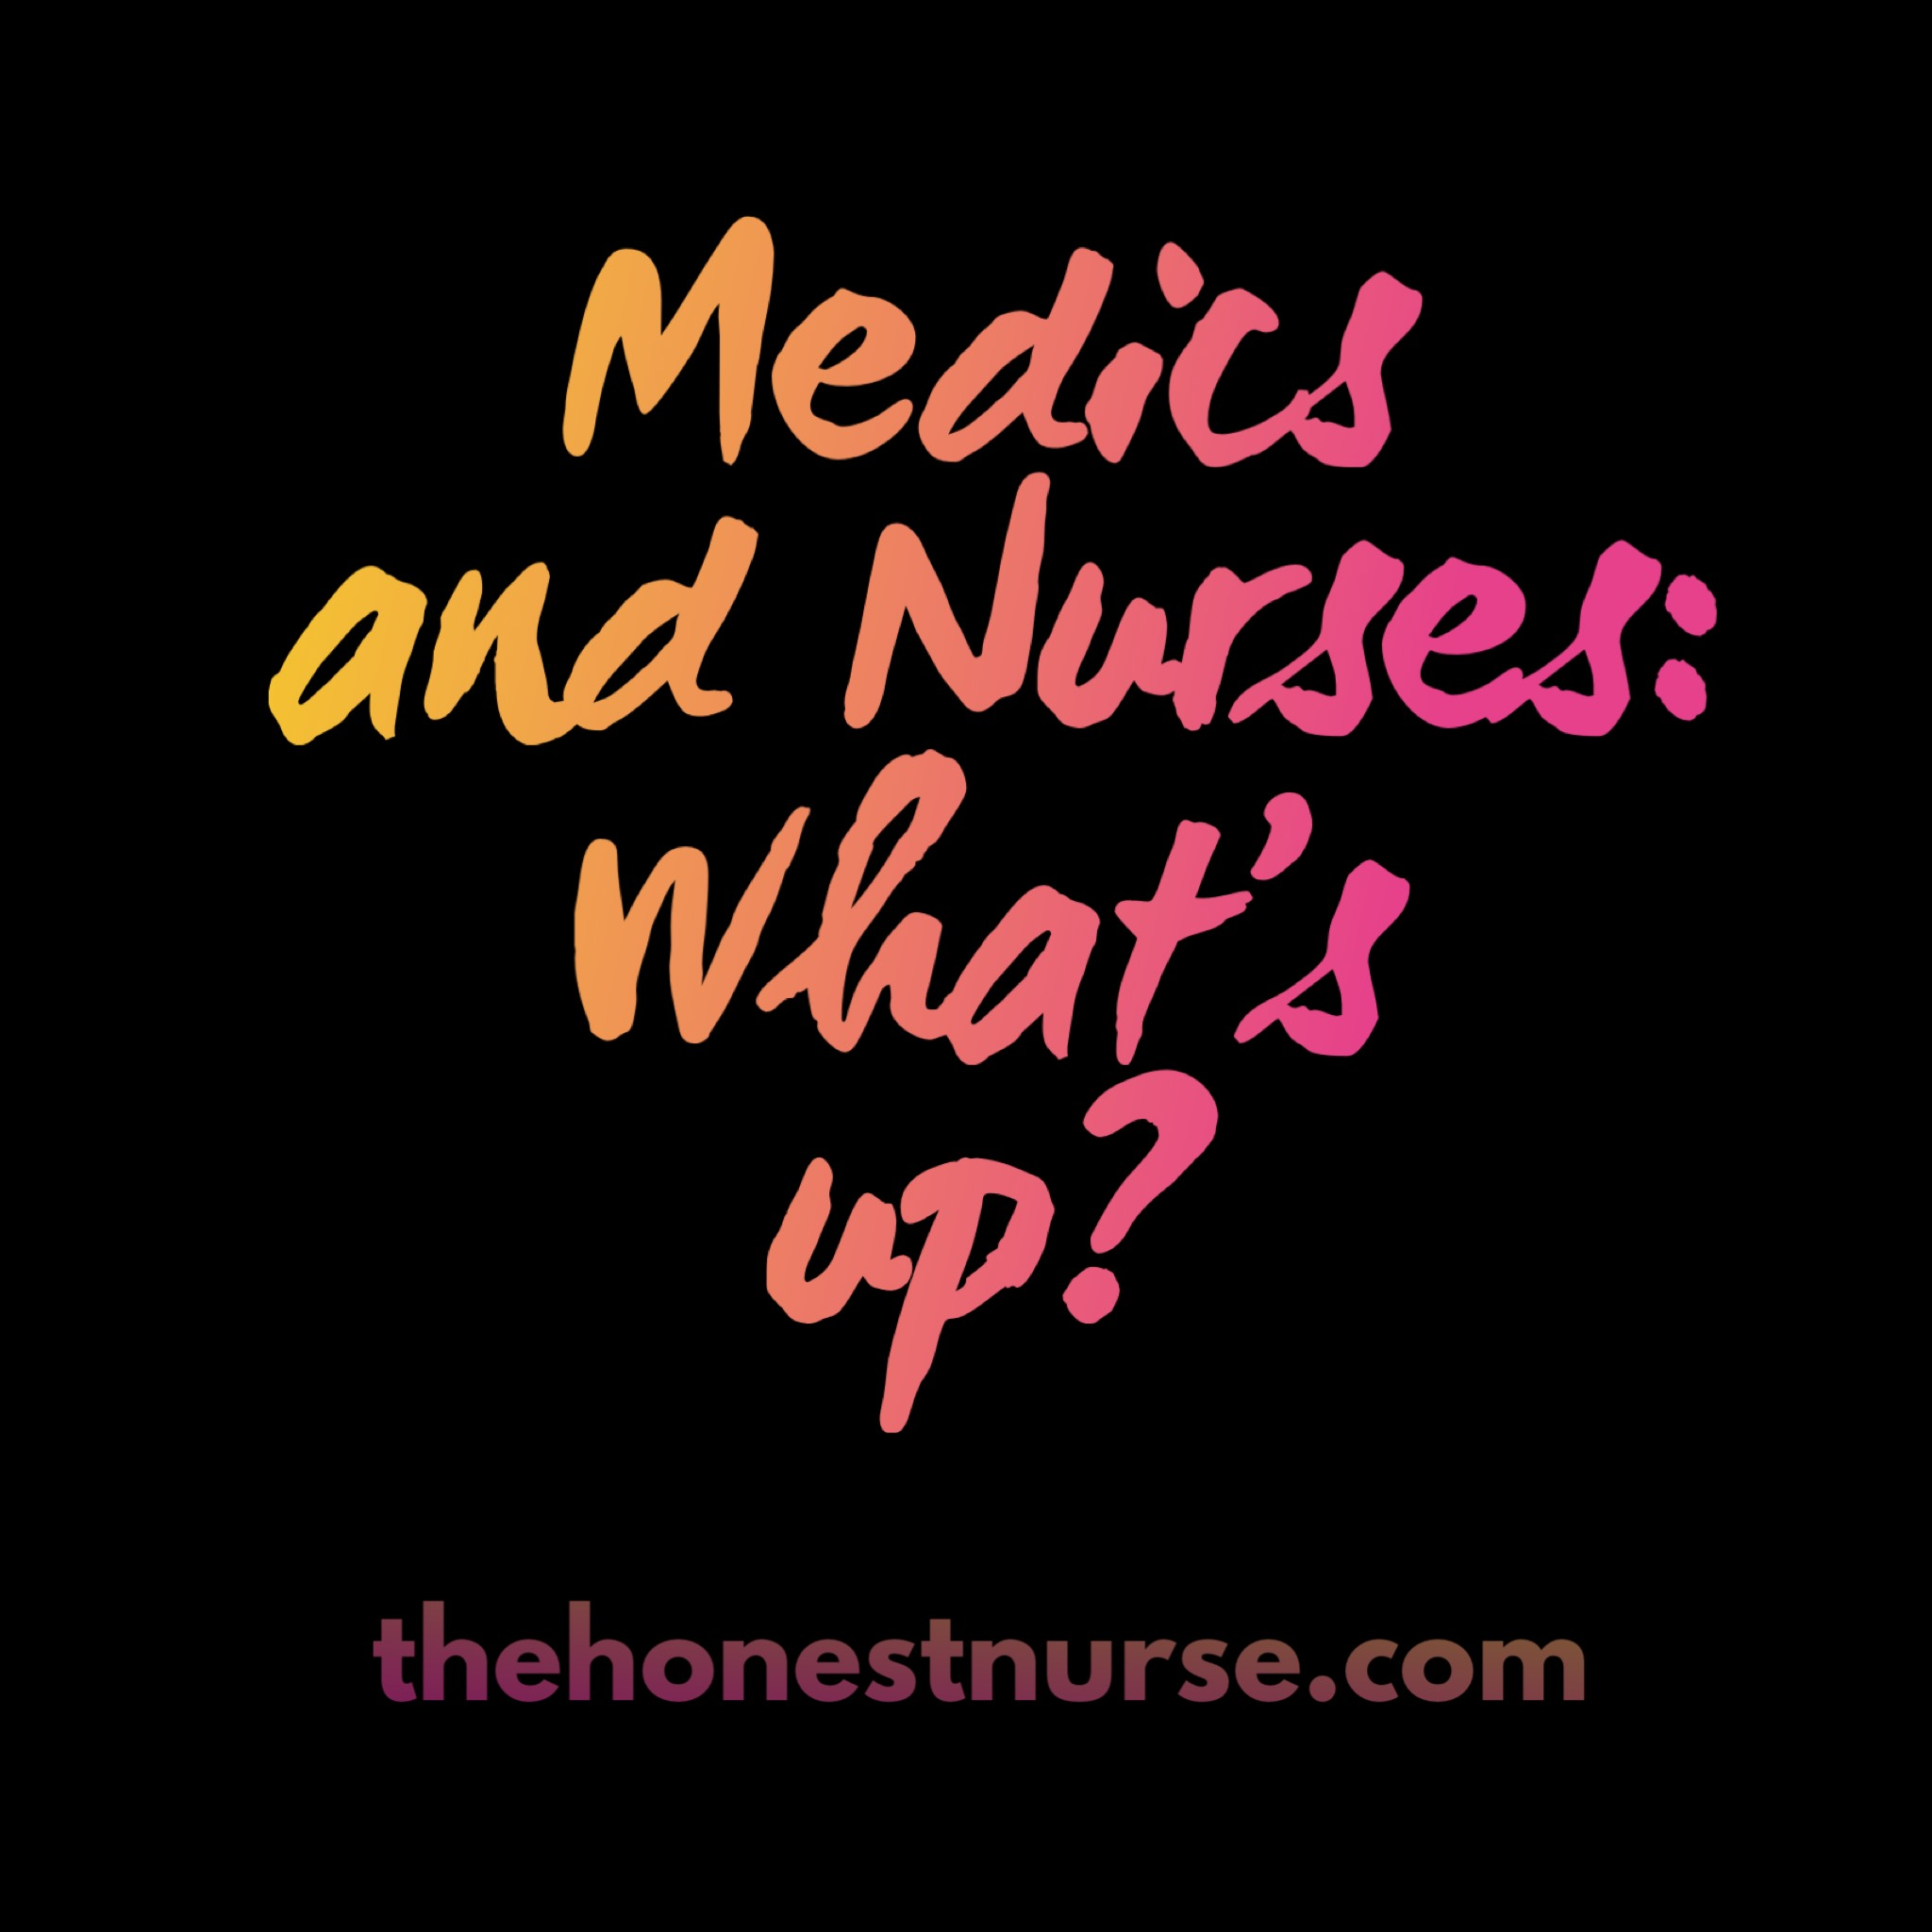 15. Medics and Nurses - Medics: Ever wonder what nurses have to say about working with you?Nurses: Ever wonder what feedback you could get from medics?Well, here's your chance to find out with this fun episode and various interviews. Enjoy!